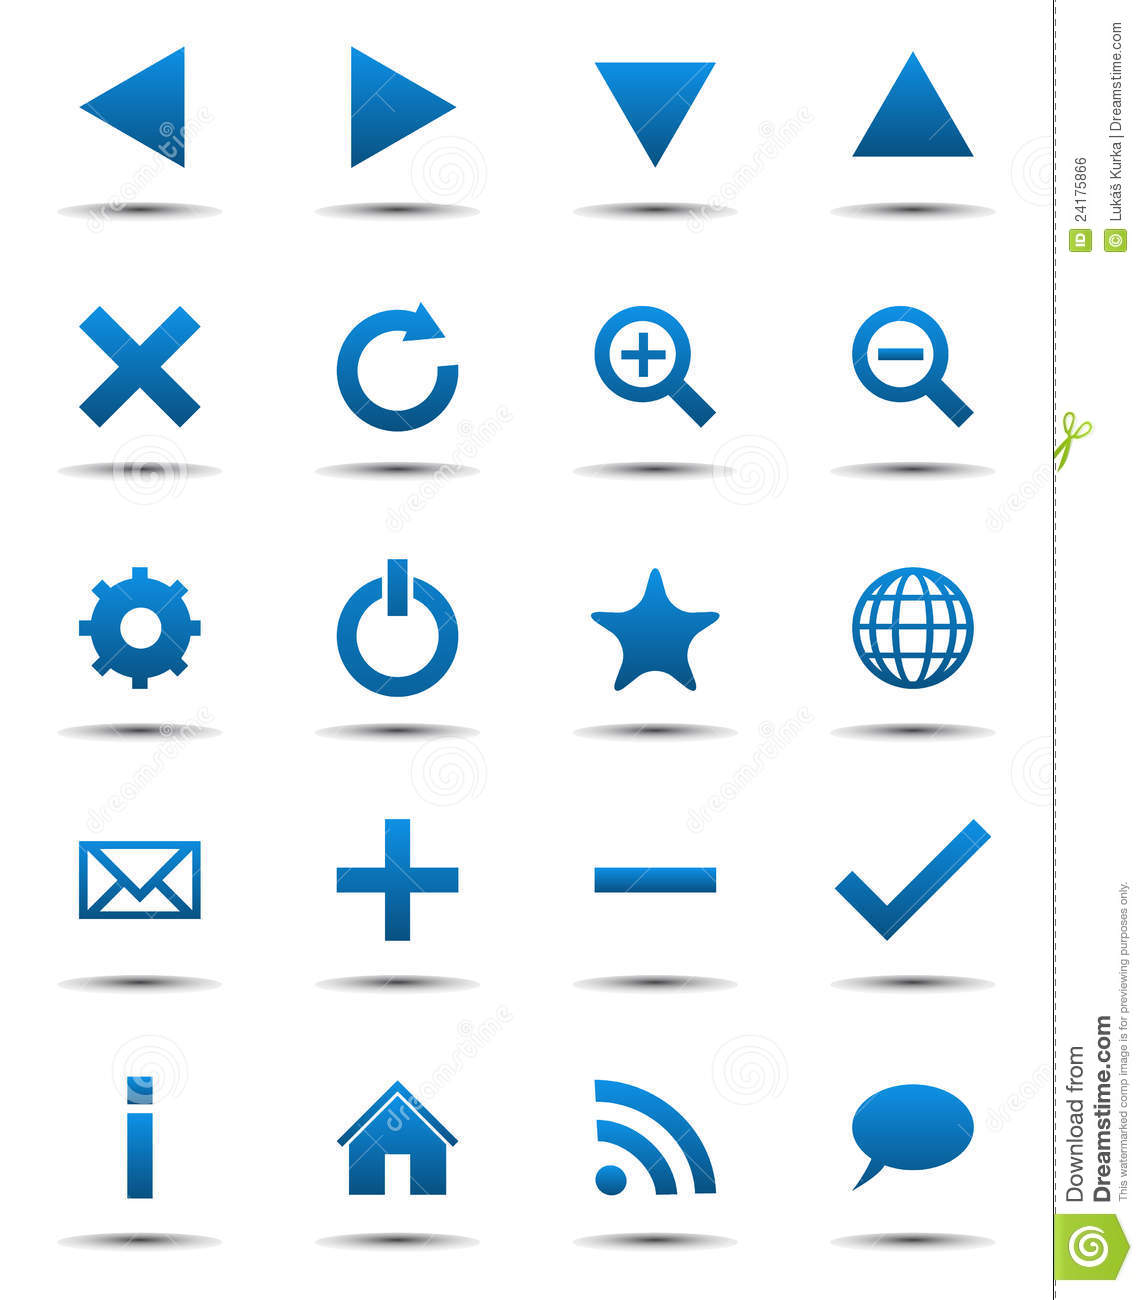 Blue Navigation Web Icons Royalty Free Stock Image - Image ...